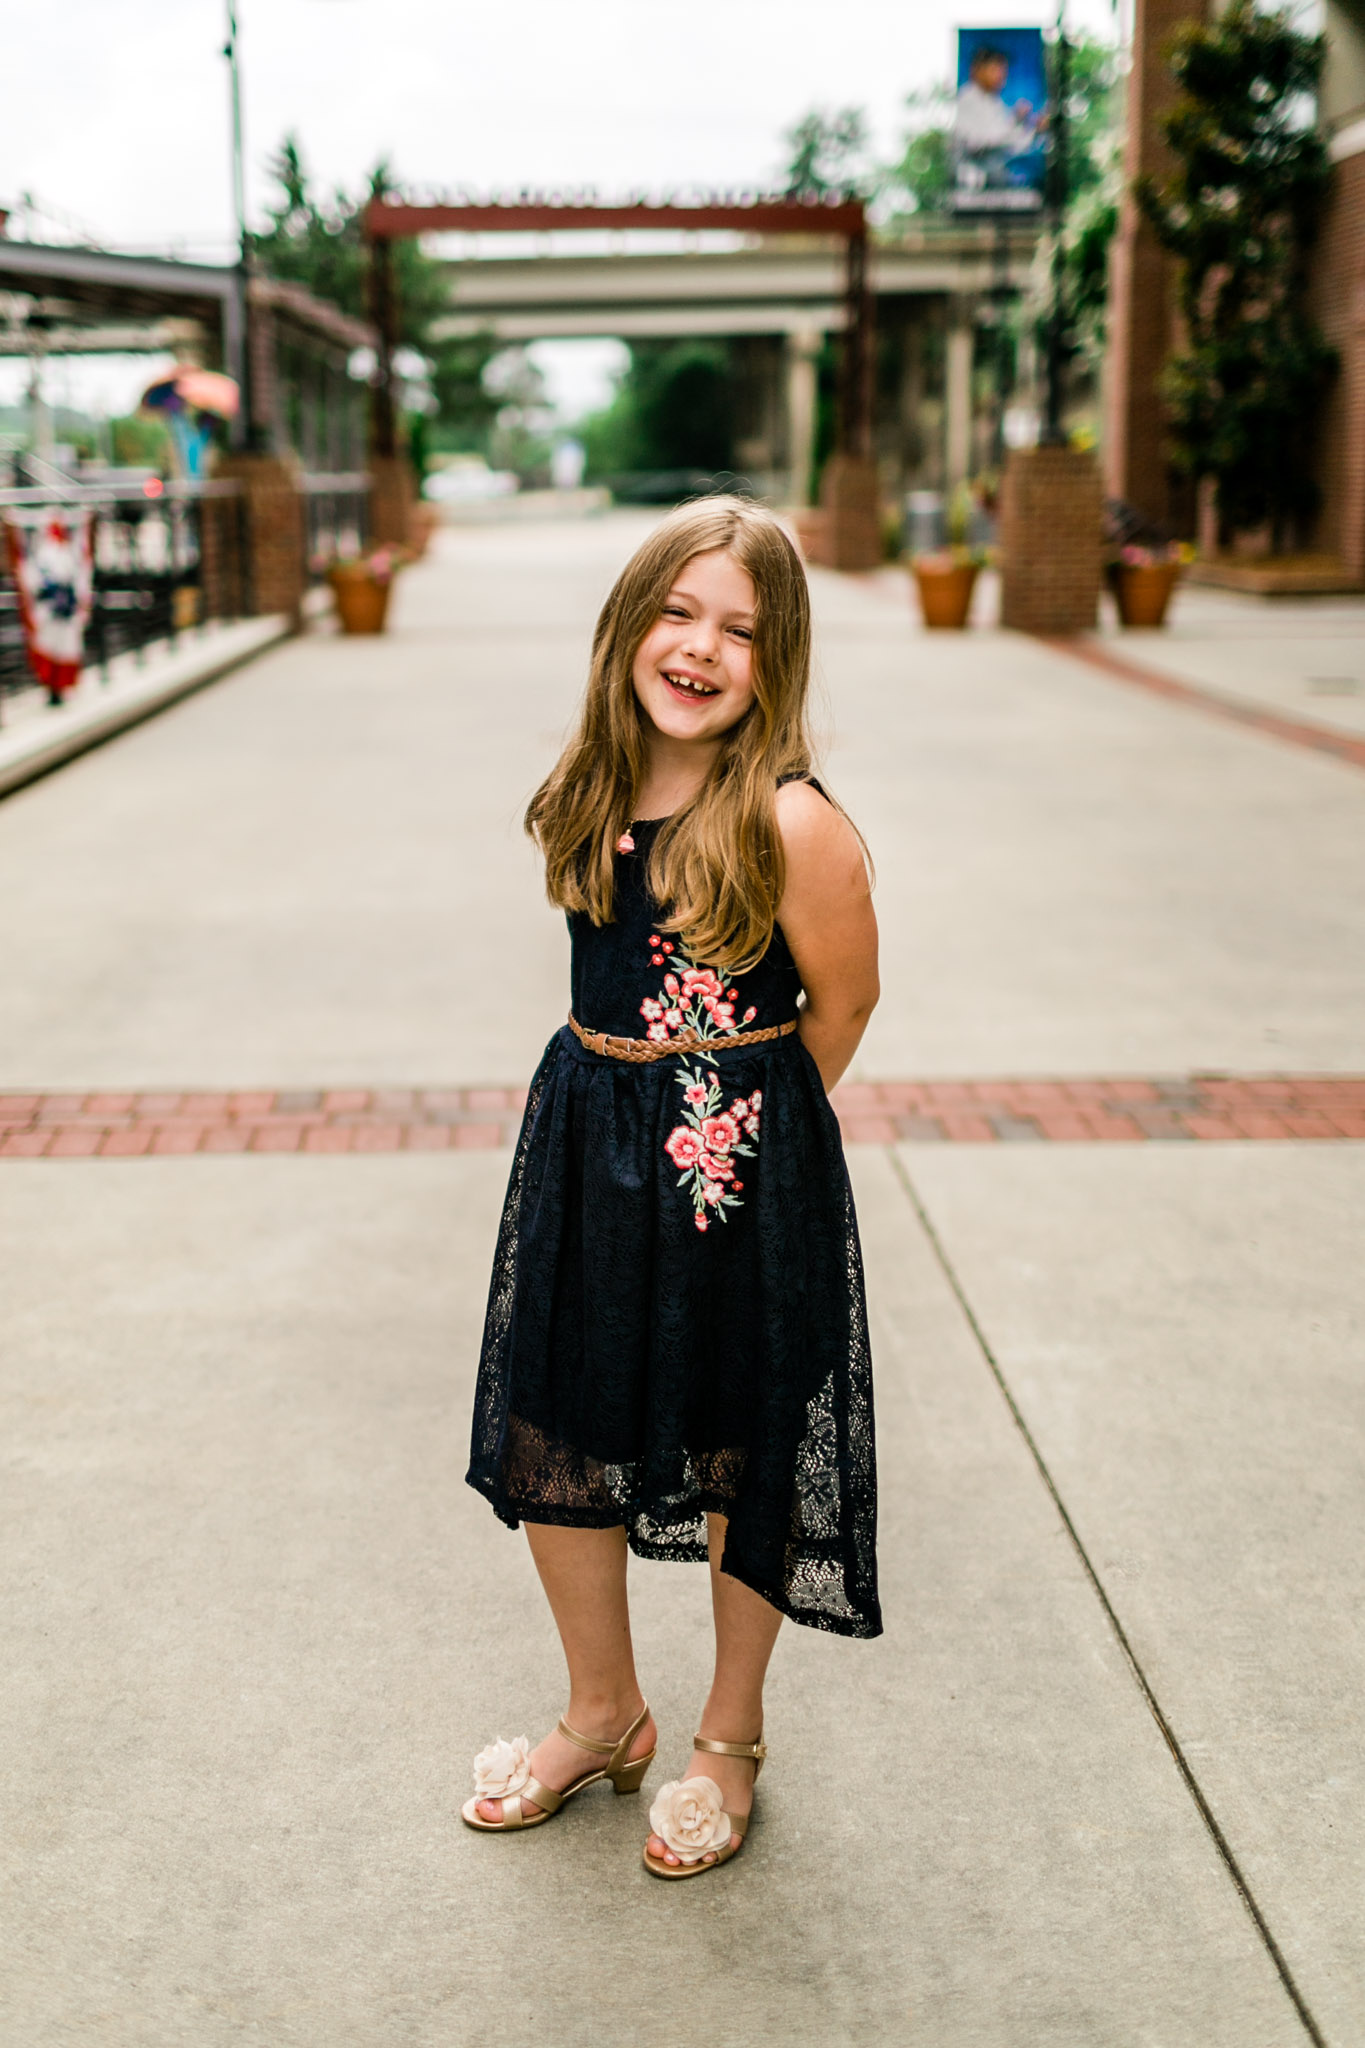 Durham Family Photographer | By G. Lin Photography | Portrait of young girl laughing at camera